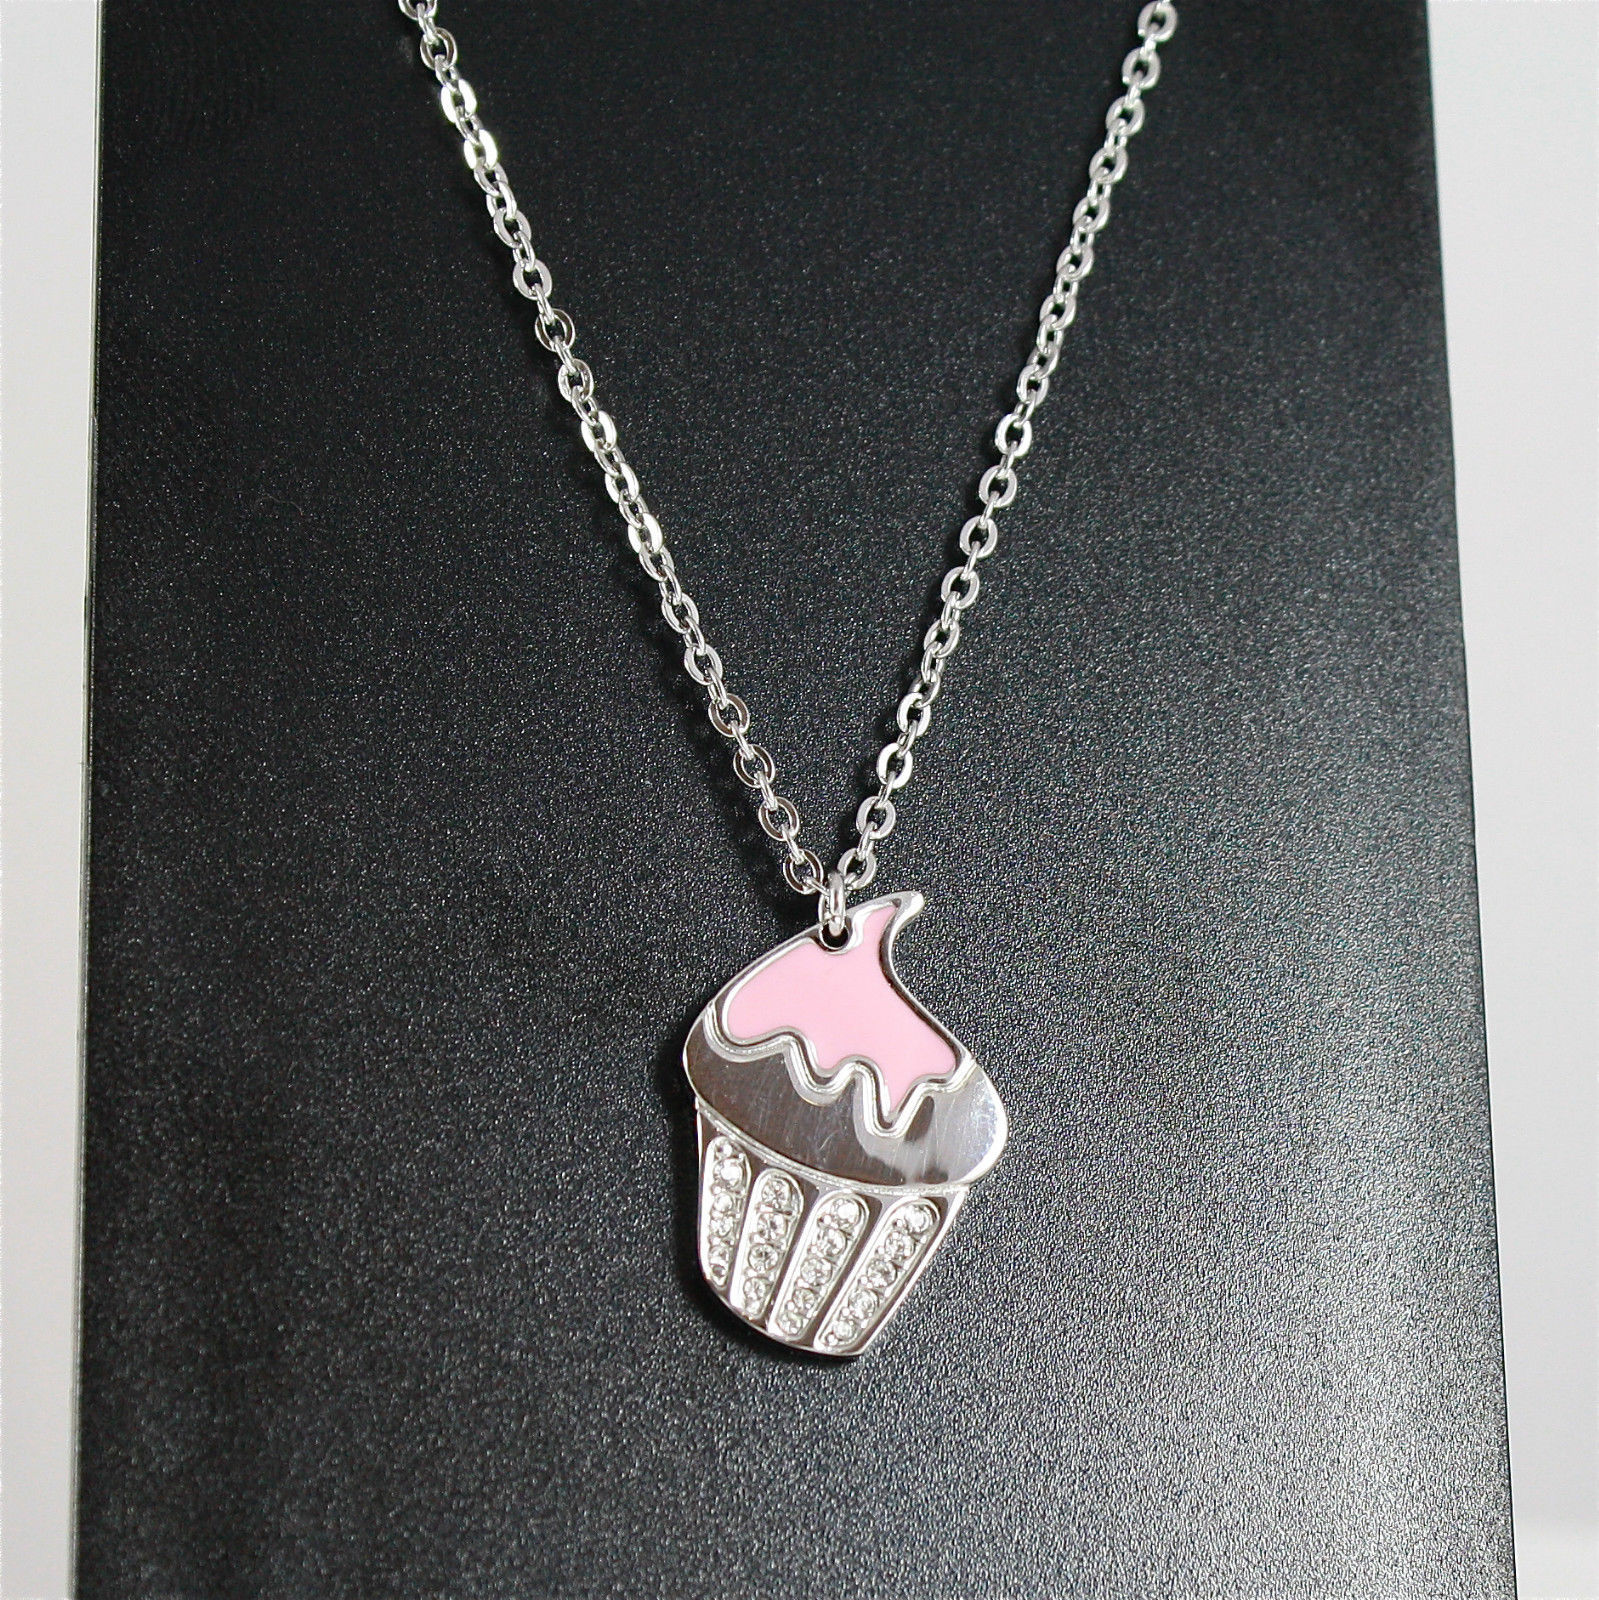 S'AGAPO' NECKLACE, CUPCAKE PENDANT, 316L STEEL, ROSE GLAZE, FACETED CRYSTALS.